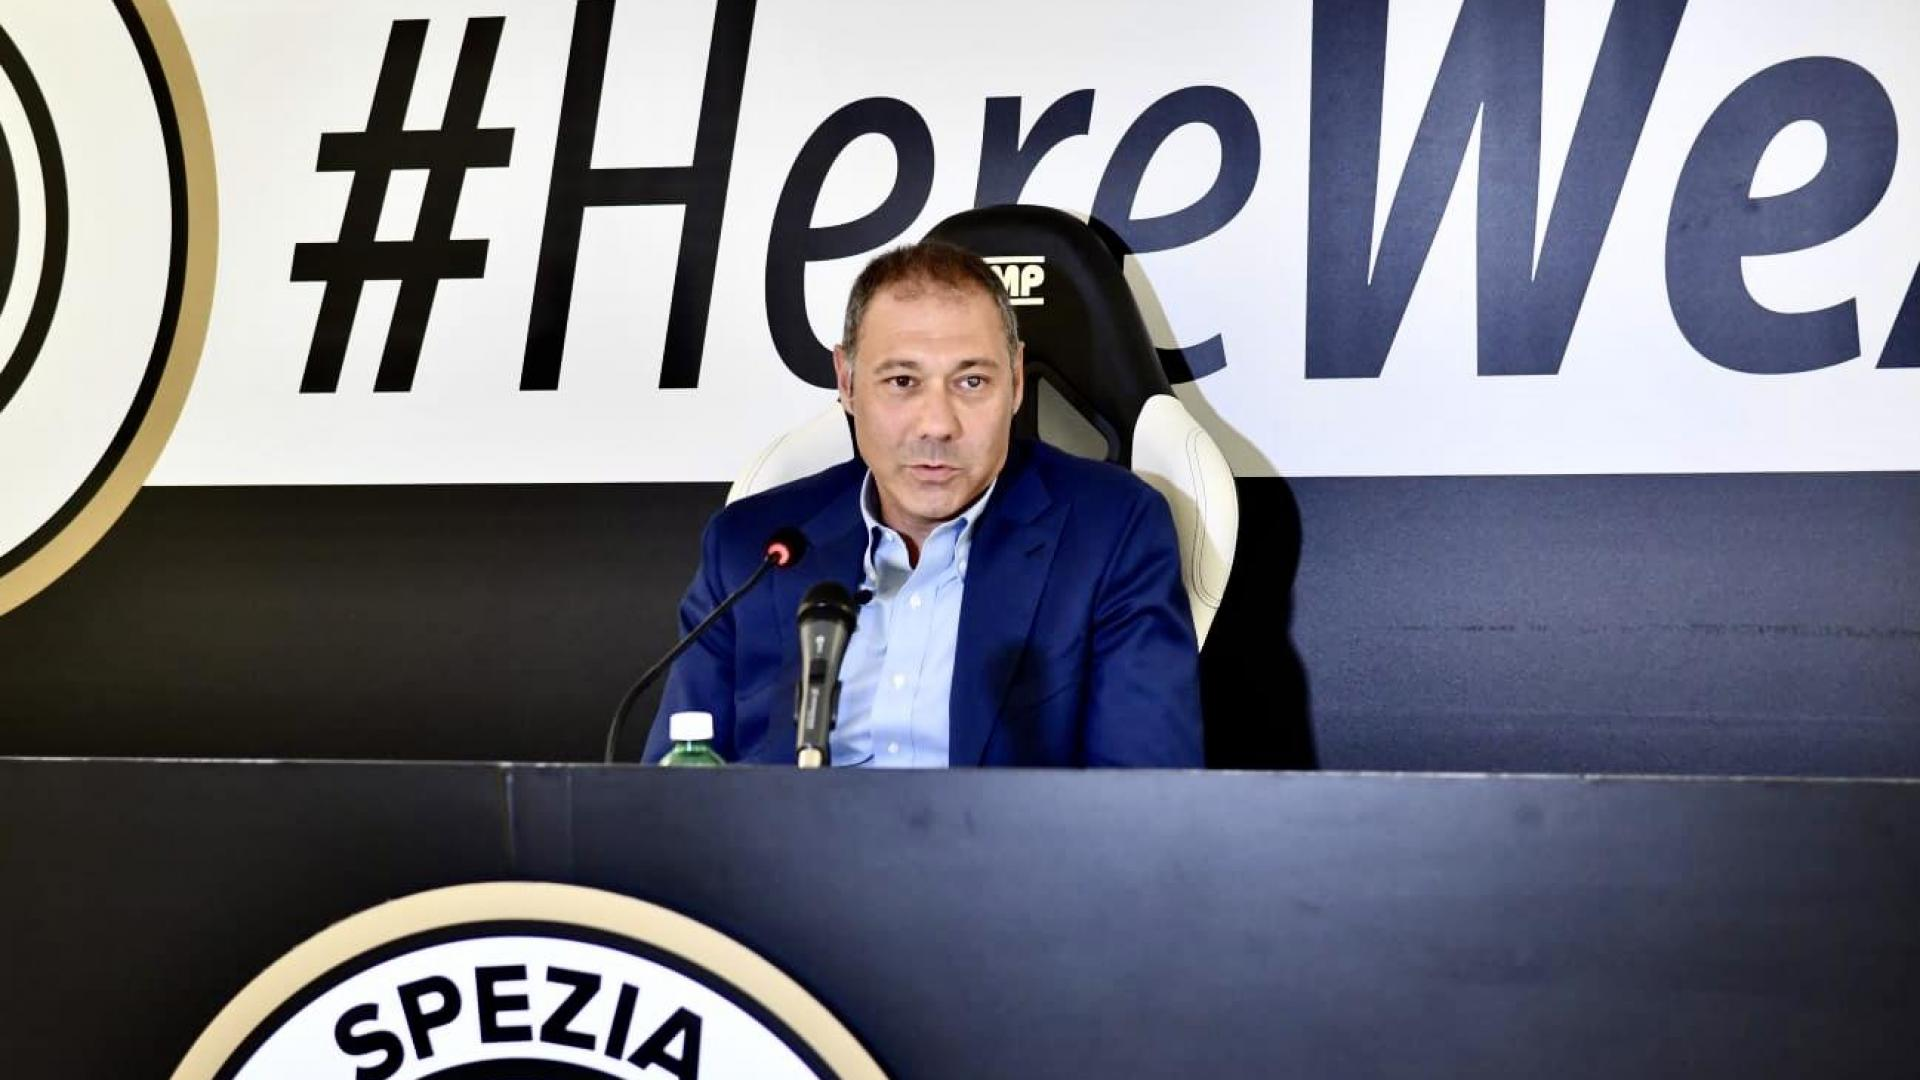 """PECINI TAKES STOCK OF THE MARKET: """"WE MANAGED TO ACHIEVE THE OBJECTIVES WE HAD SET OURSELVES"""""""